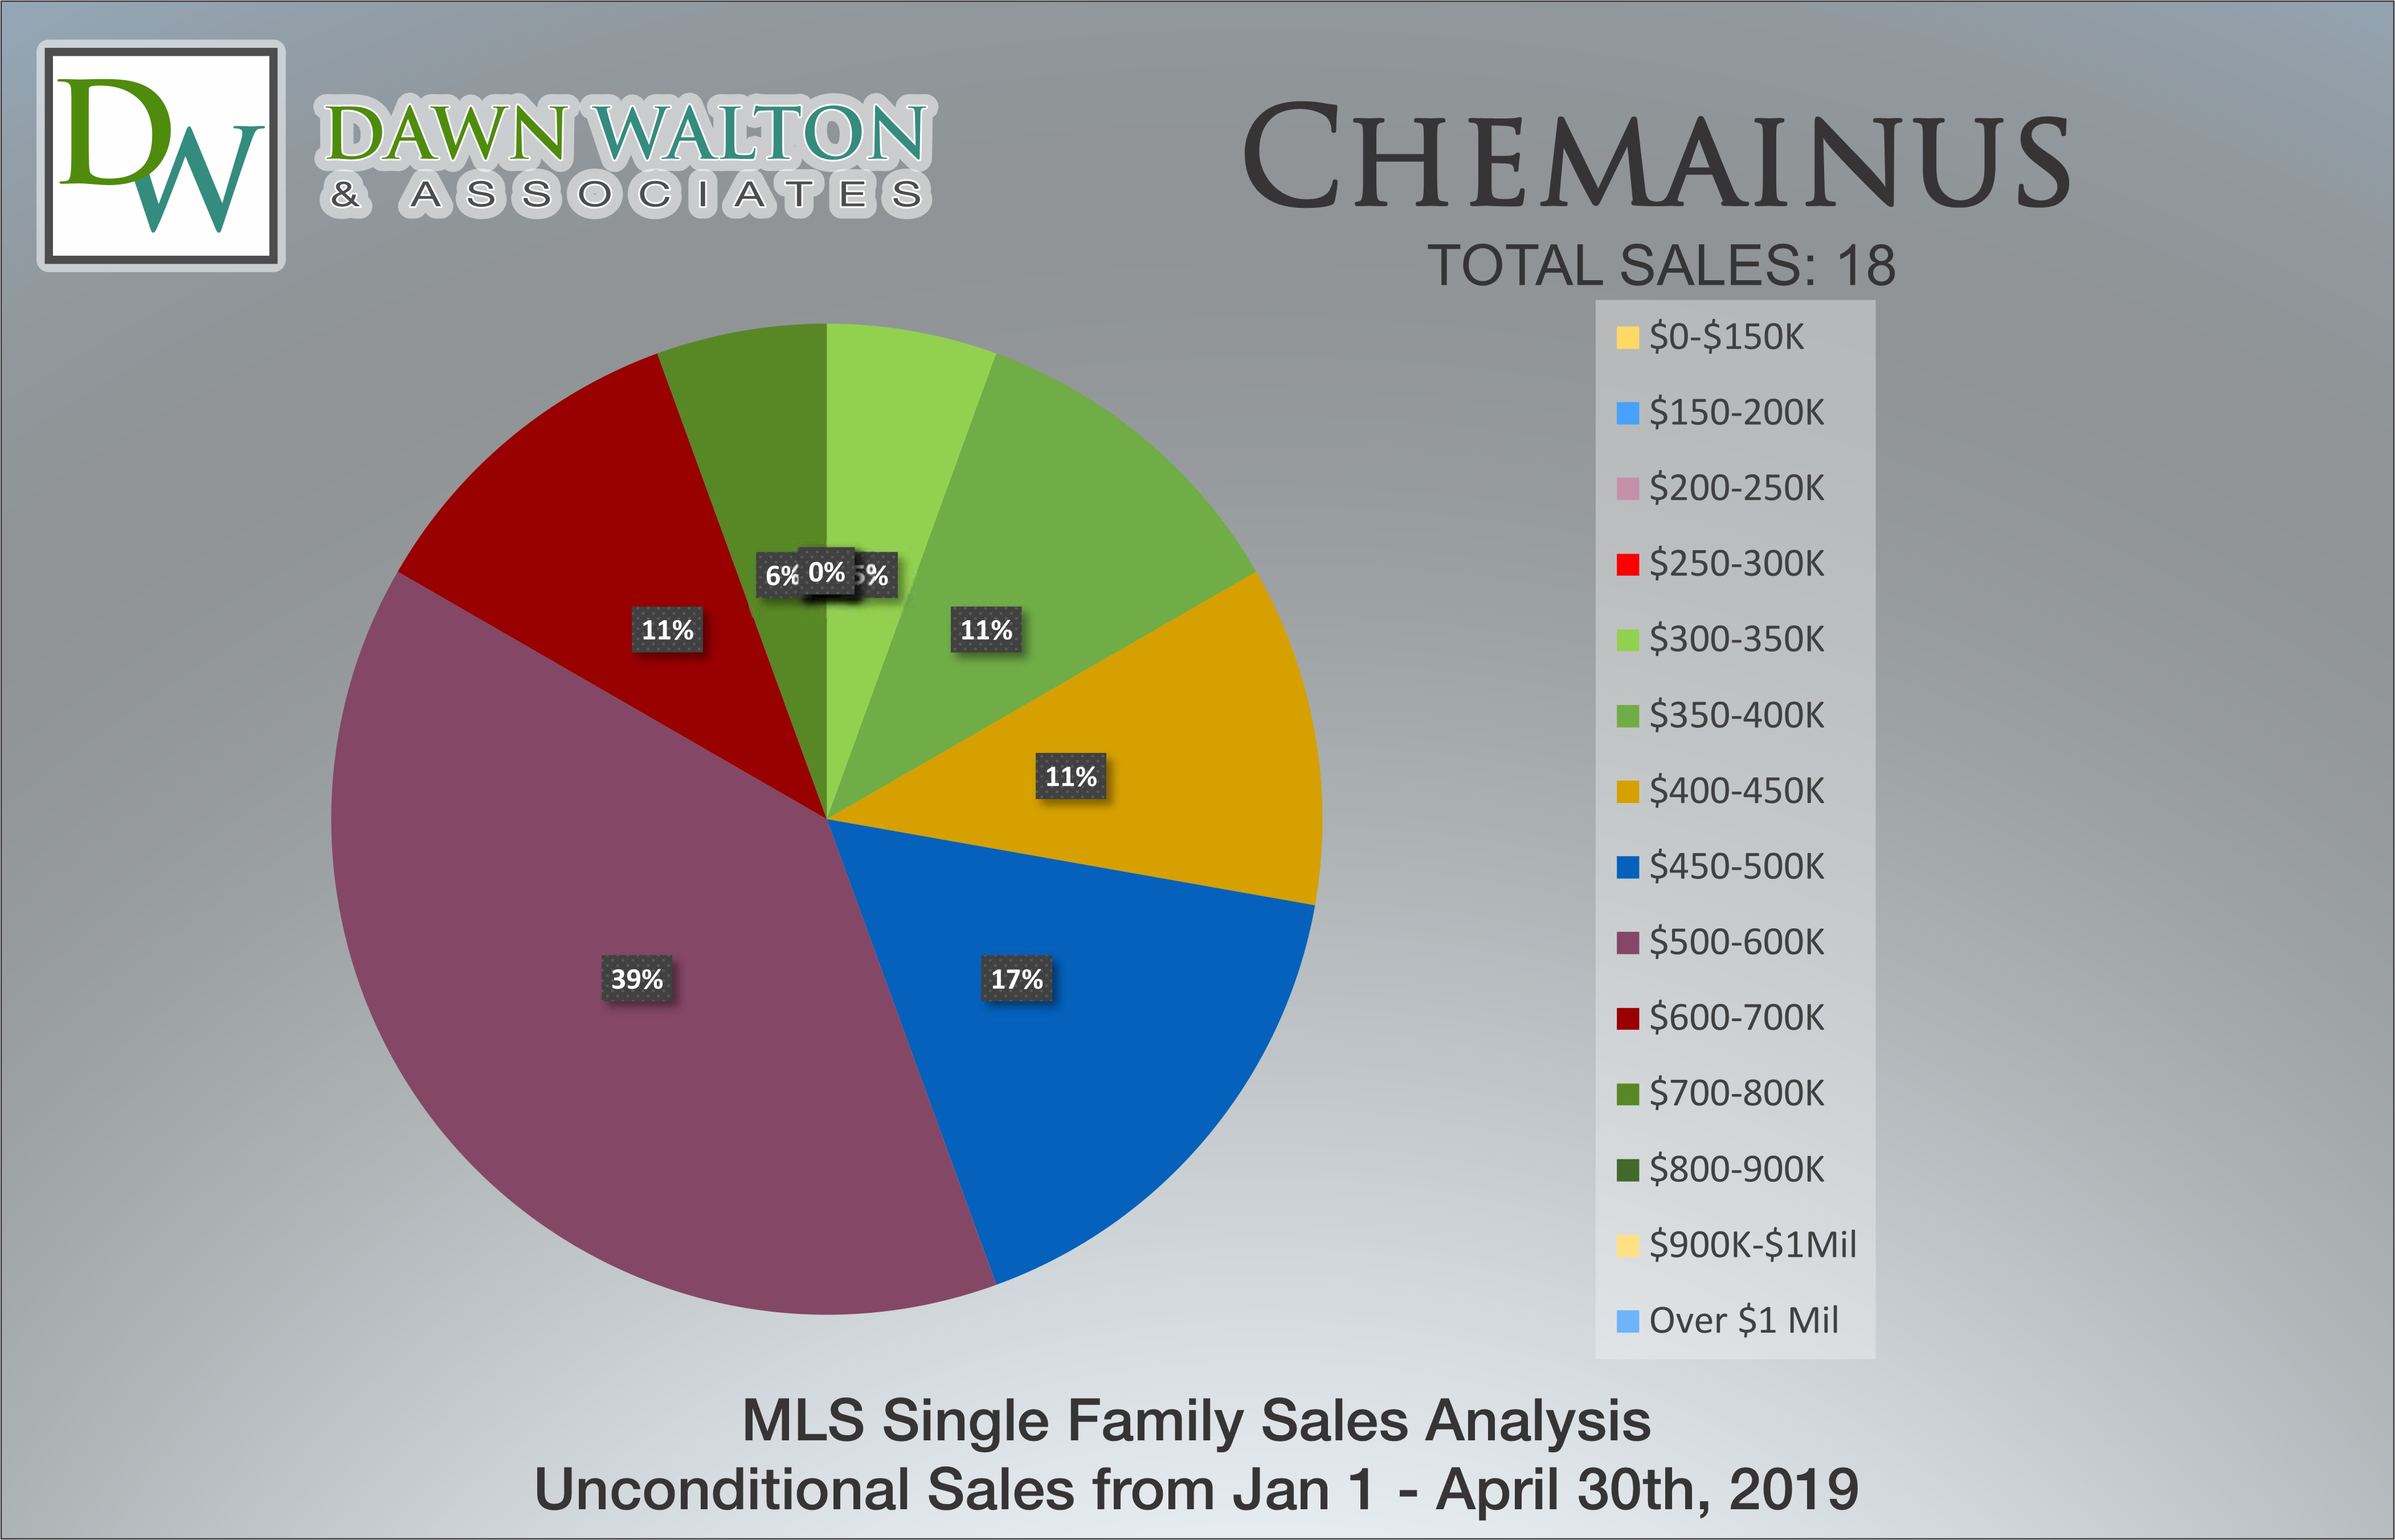 Chemainus Real Estate Market Stats Price Percentage Jan 1 - April 30, 2019 - Nanaimo Realtor Dawn Walton